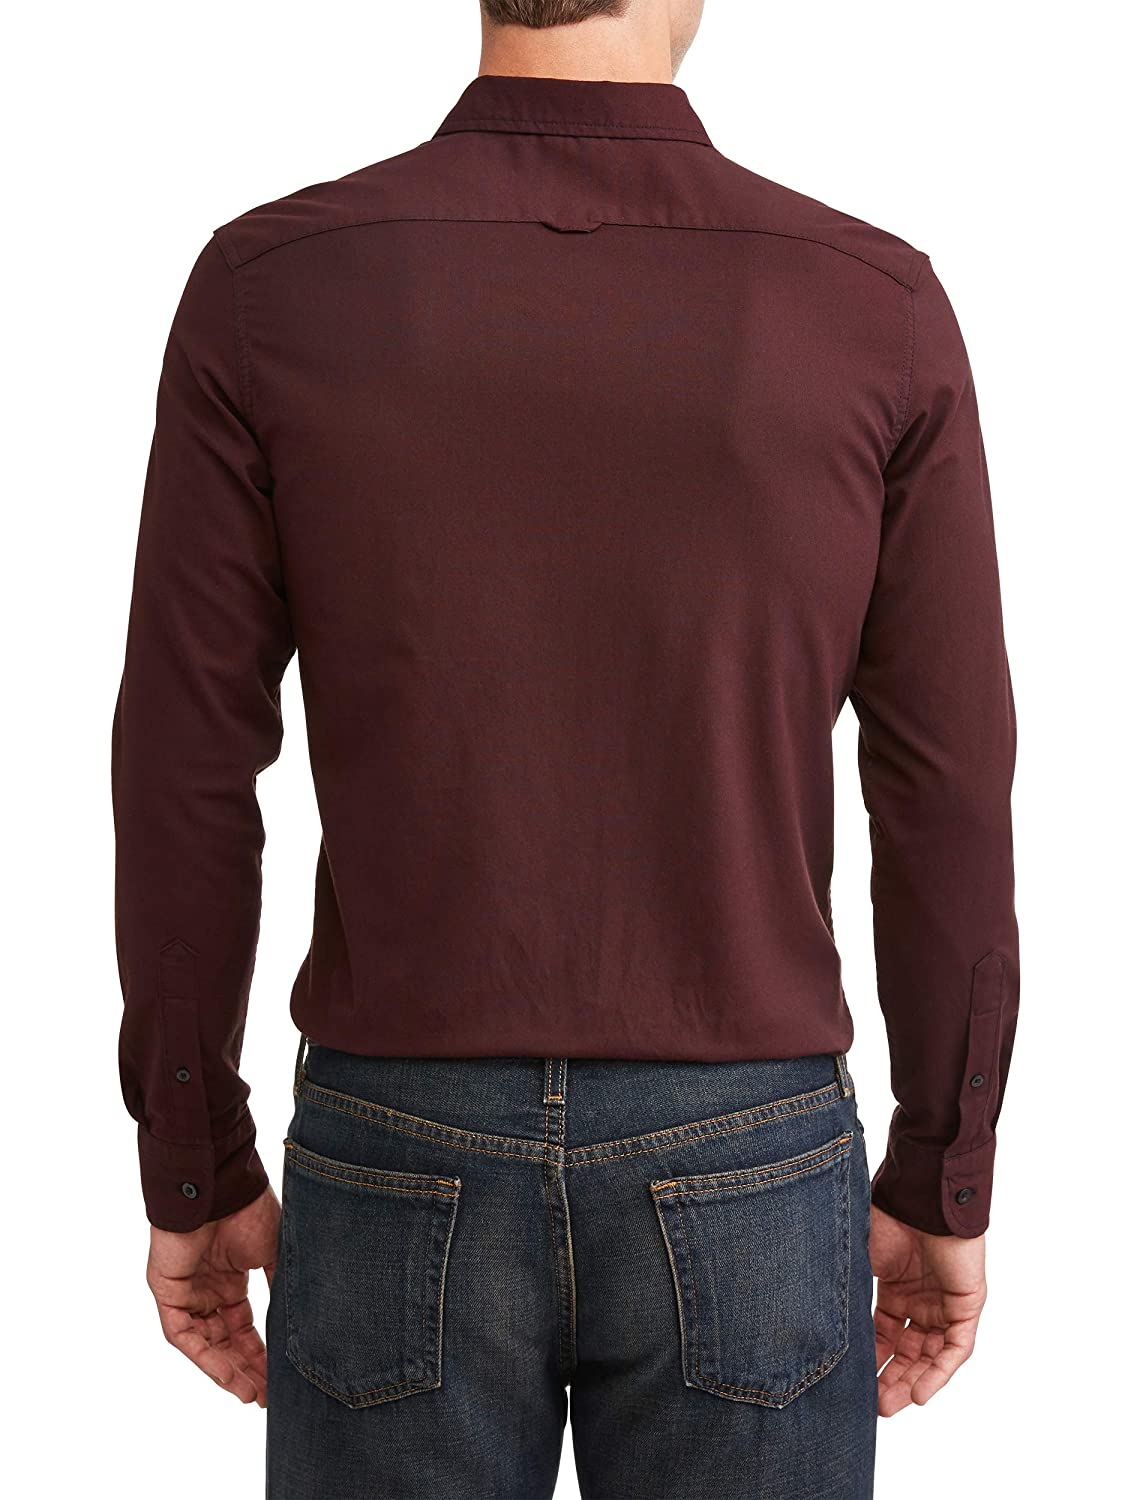 e99222d8 George Men's Long Sleeve Slim Fit Oxford Shirt with Front Chest Pocket  (Windsor Wine, X-Large XL, 46-48) at Amazon Men's Clothing store: